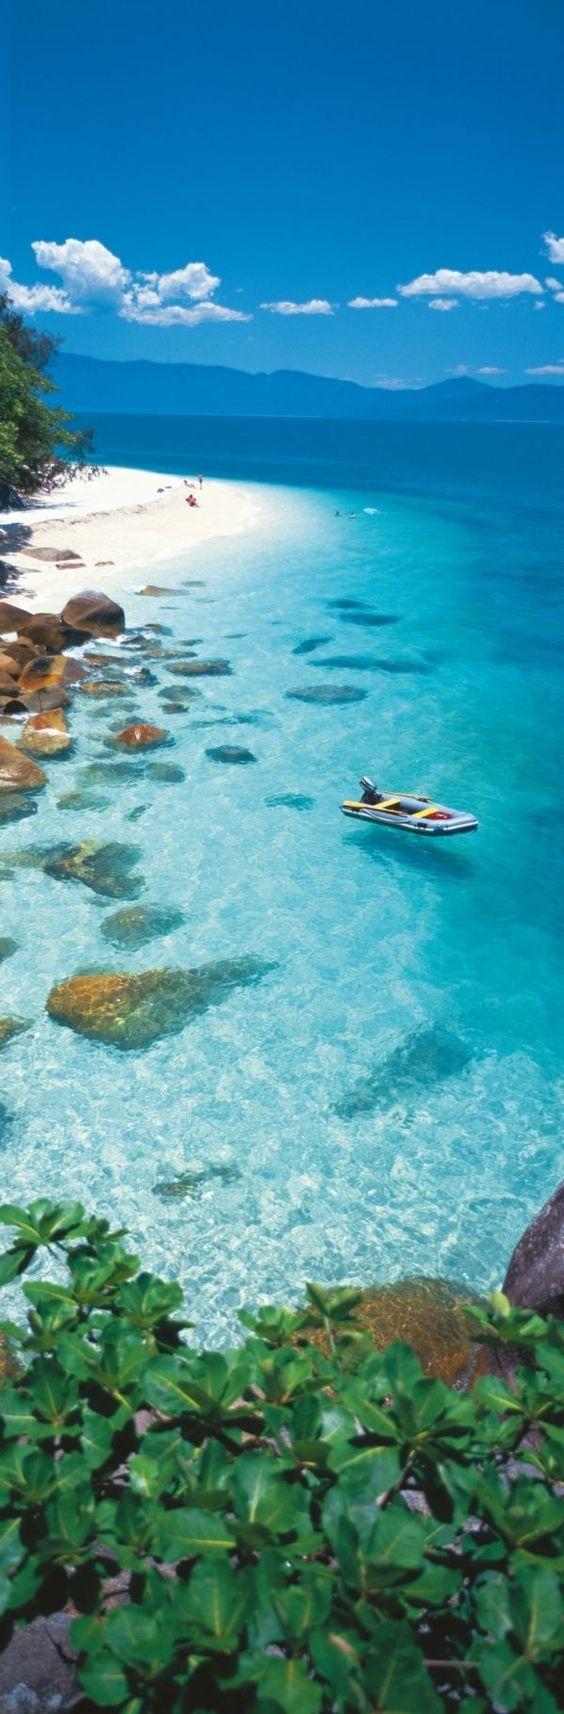 Repin! 22 Views of Tropical Islands That You'll Never Forget ... → #Travel #beach #wanderlust: